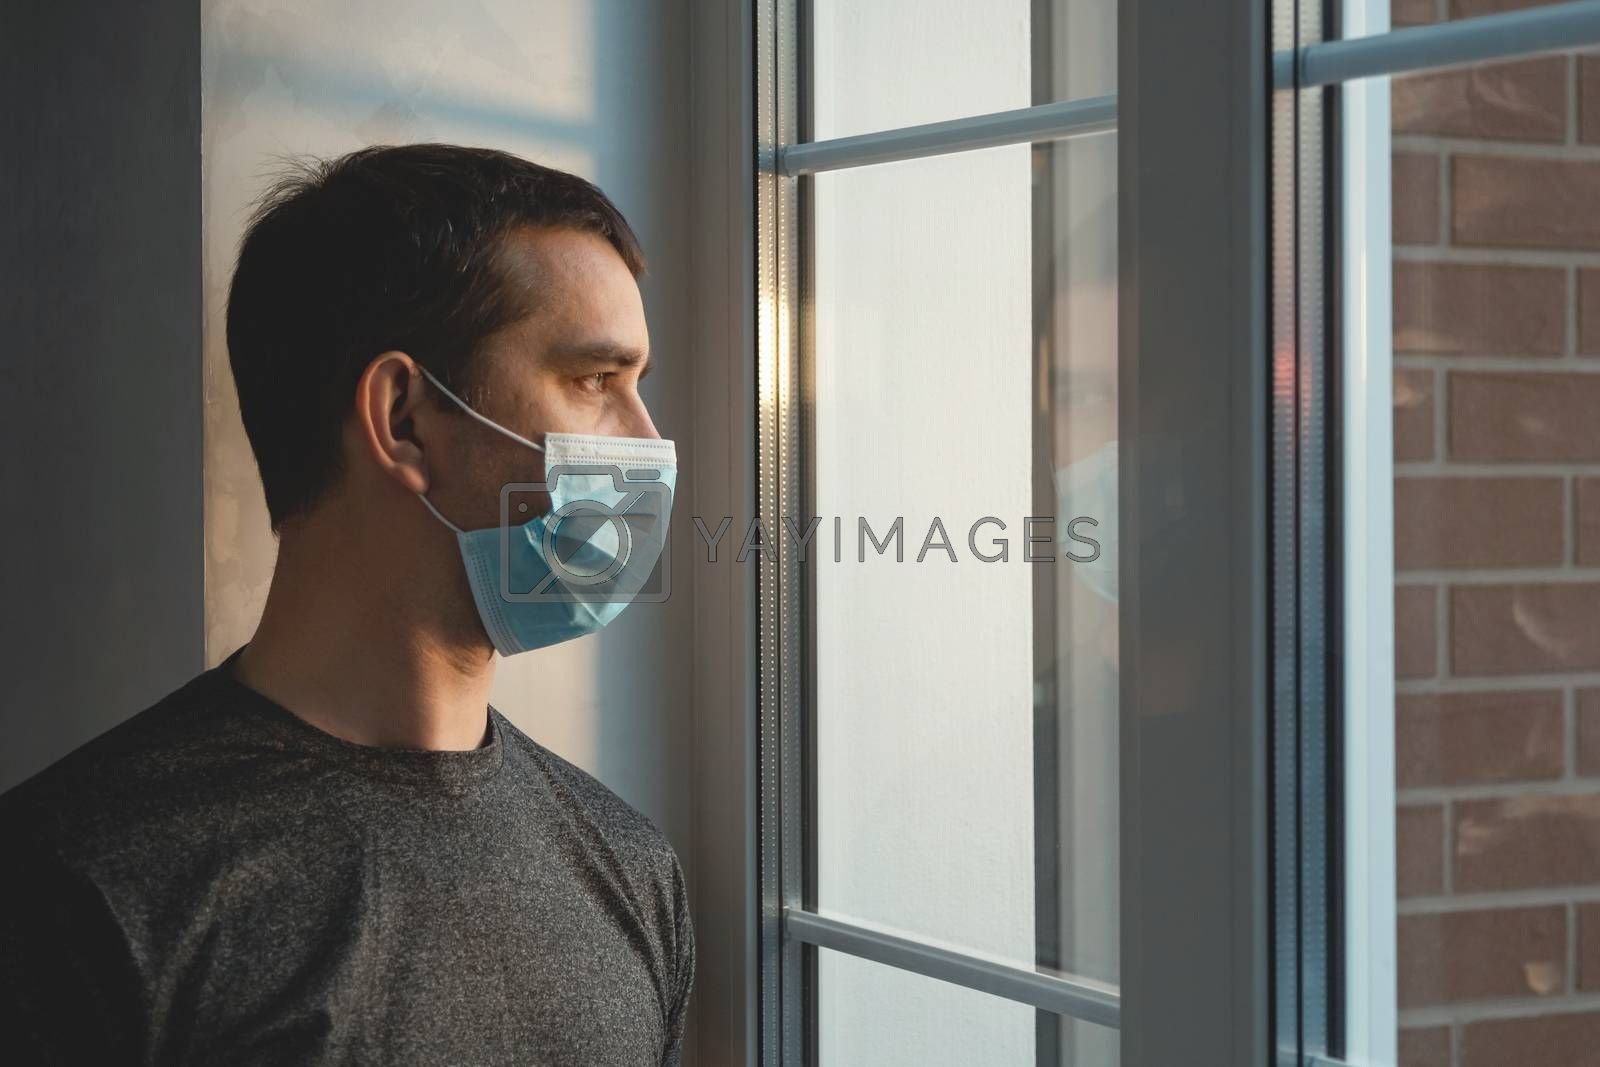 Quarantine self-isolation. Sad young man in a medical mask who looks out the window through the window. Infected man in medical mask on self-isolation looks at the street through the window of a house